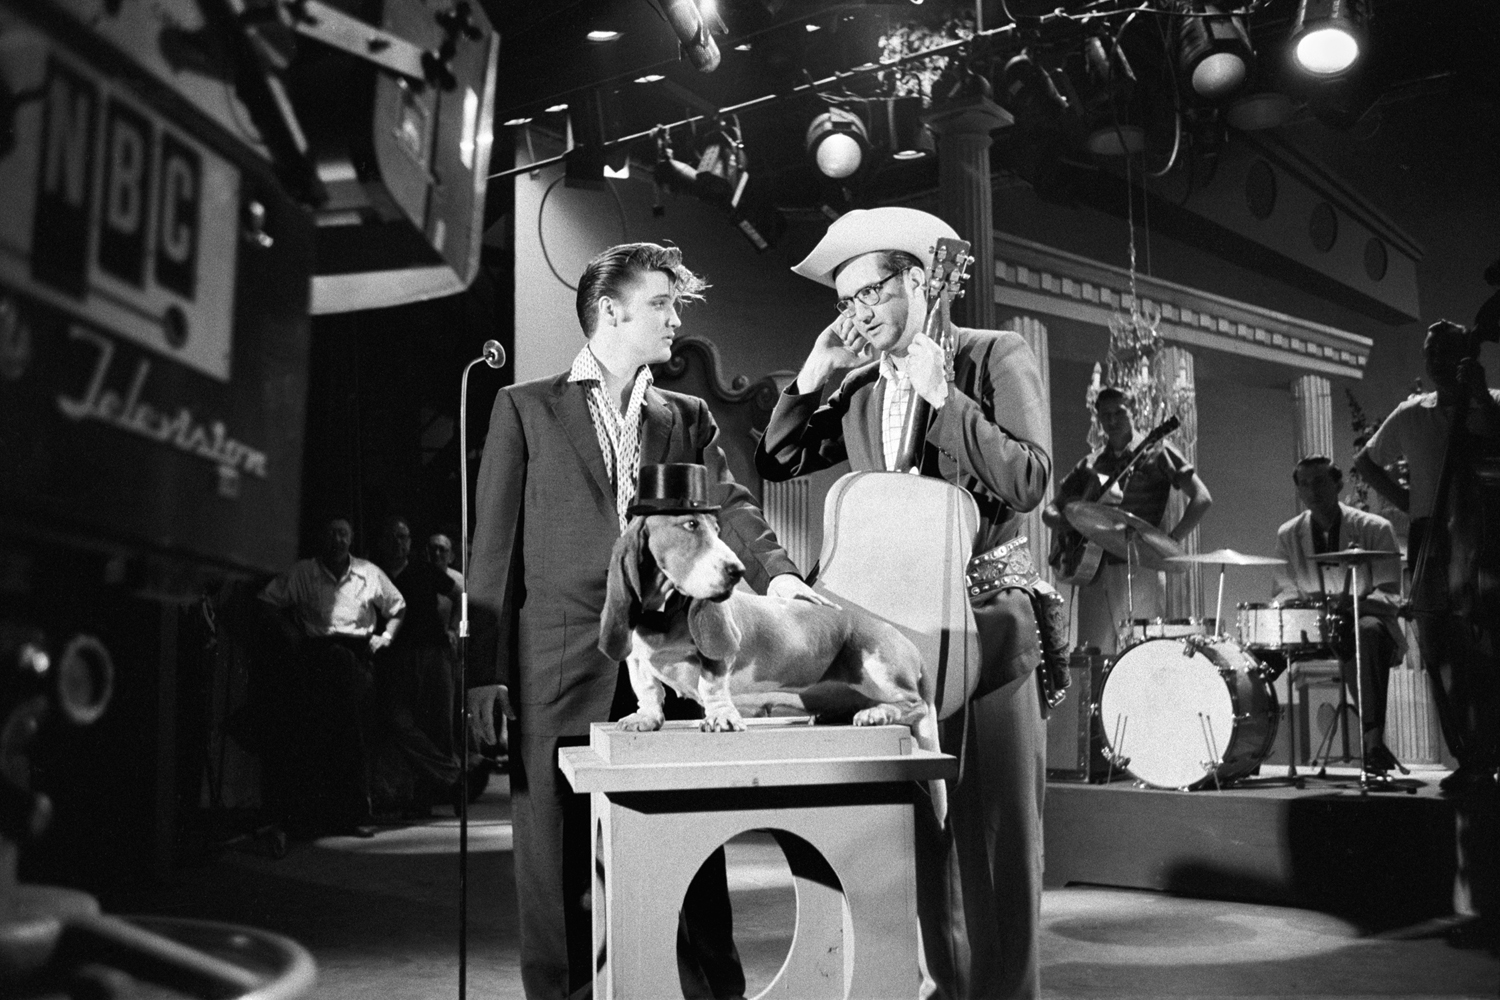 July 1, 1956. The Hudson Theatre, New York. Dress rehearsal for the Steve Allen Show. My classic  show business photograph. Steve Allen with his six shooter, Elvis, a dog, guys with musical instruments, Greek columns, stage hands and lighting overhead. I just like the way all the elements come together — how could it be more theatrical?